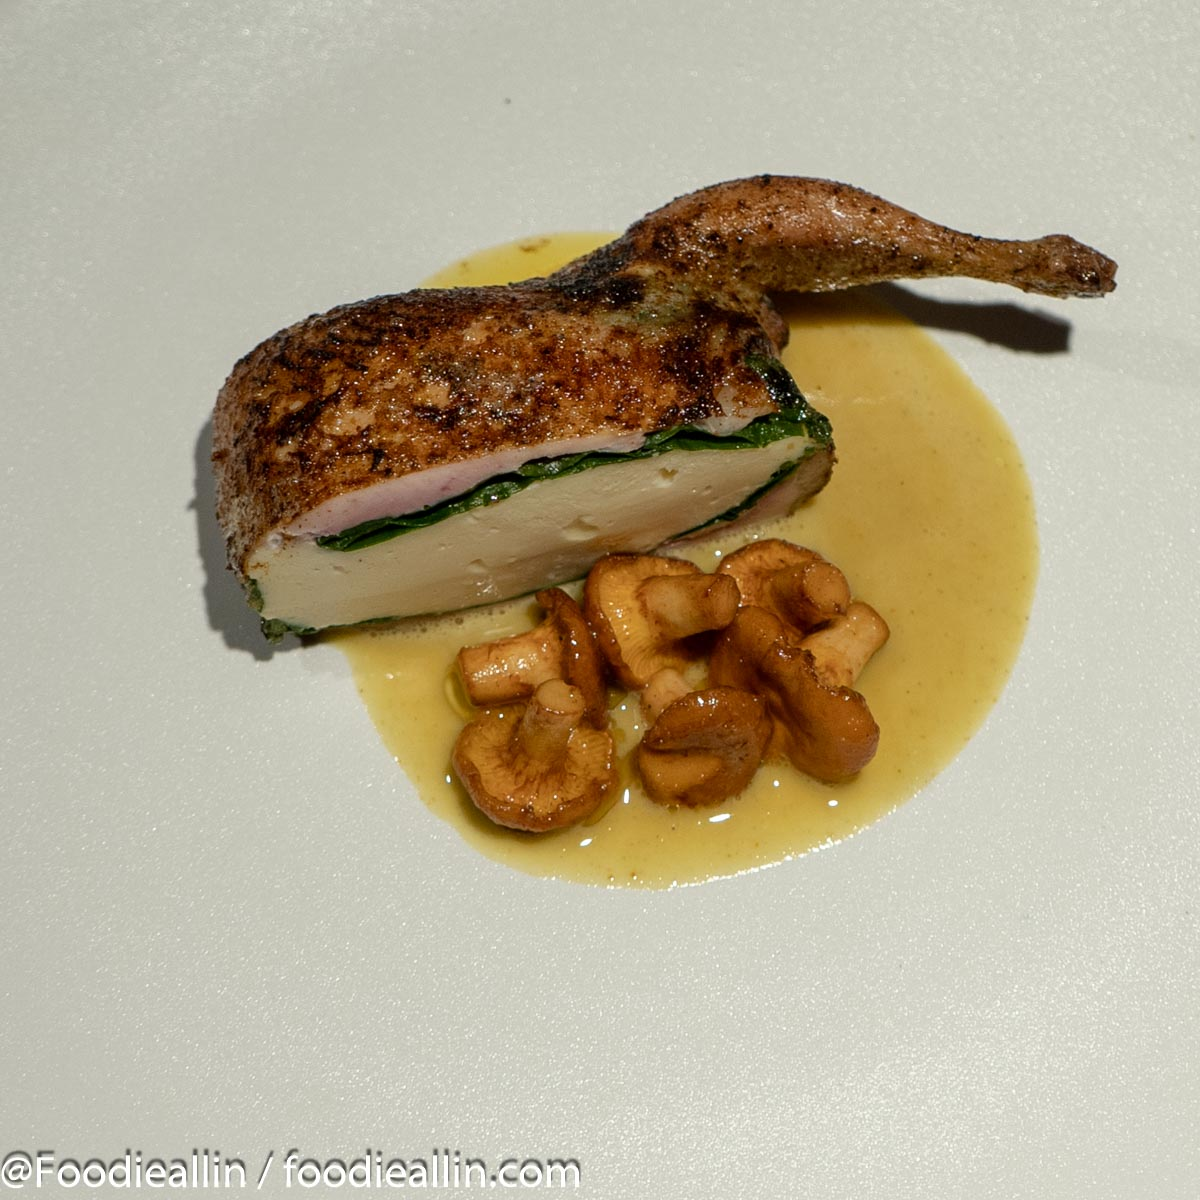 Roasted quail stuffed with quail mousse and spinach, served with girolles and curry.